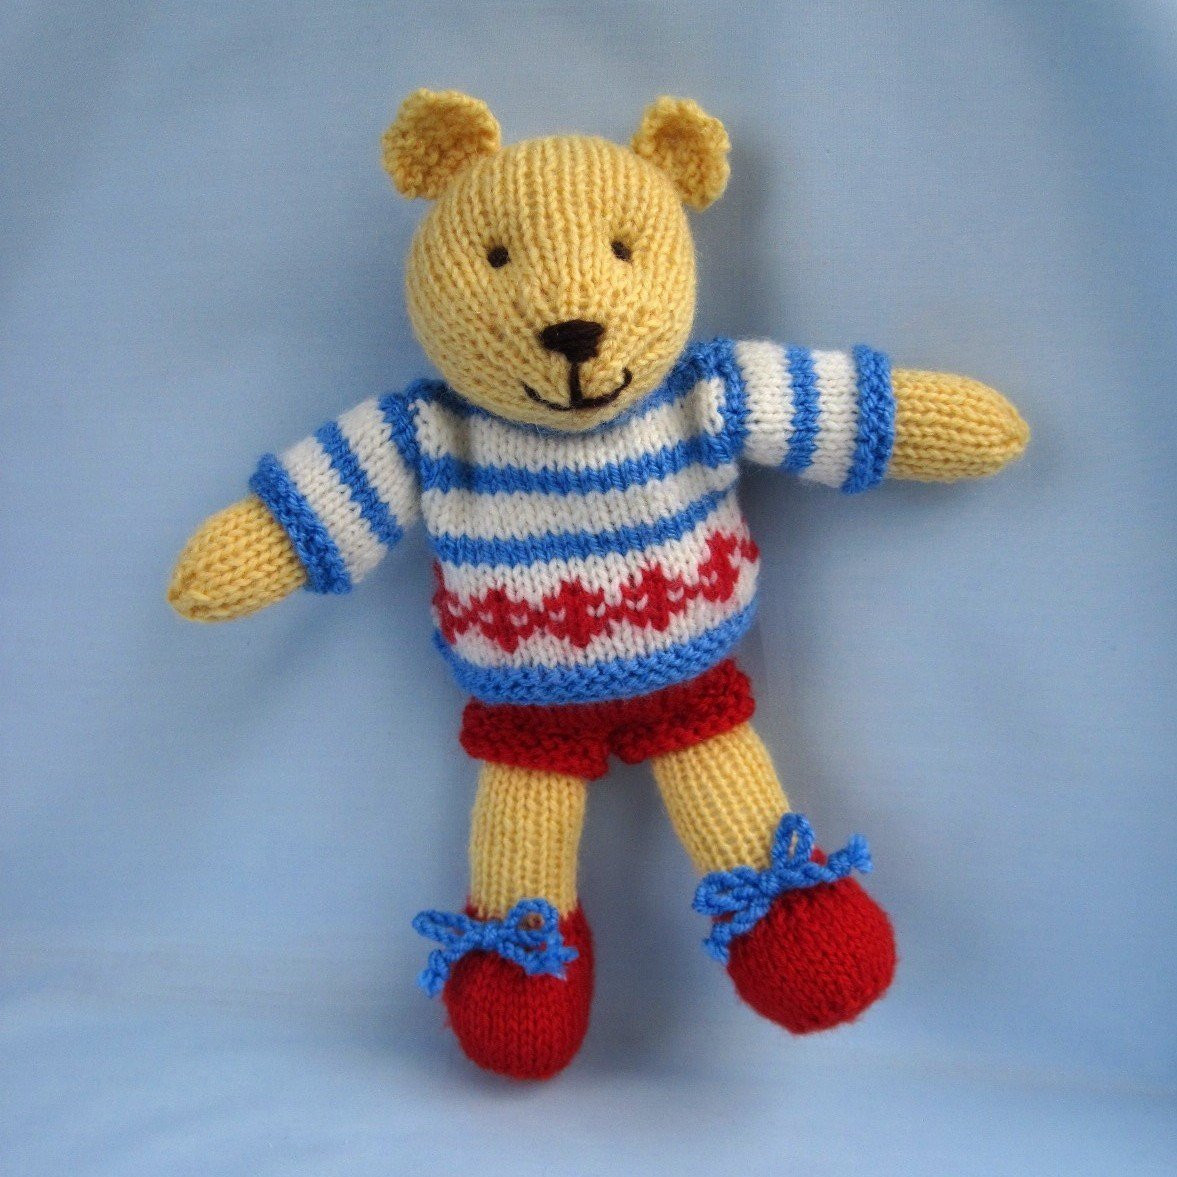 Knitting Patterns toys New butternut Bear Knitted toy Doll Pdf Email Knitting Pattern Of Amazing 41 Models Knitting Patterns toys